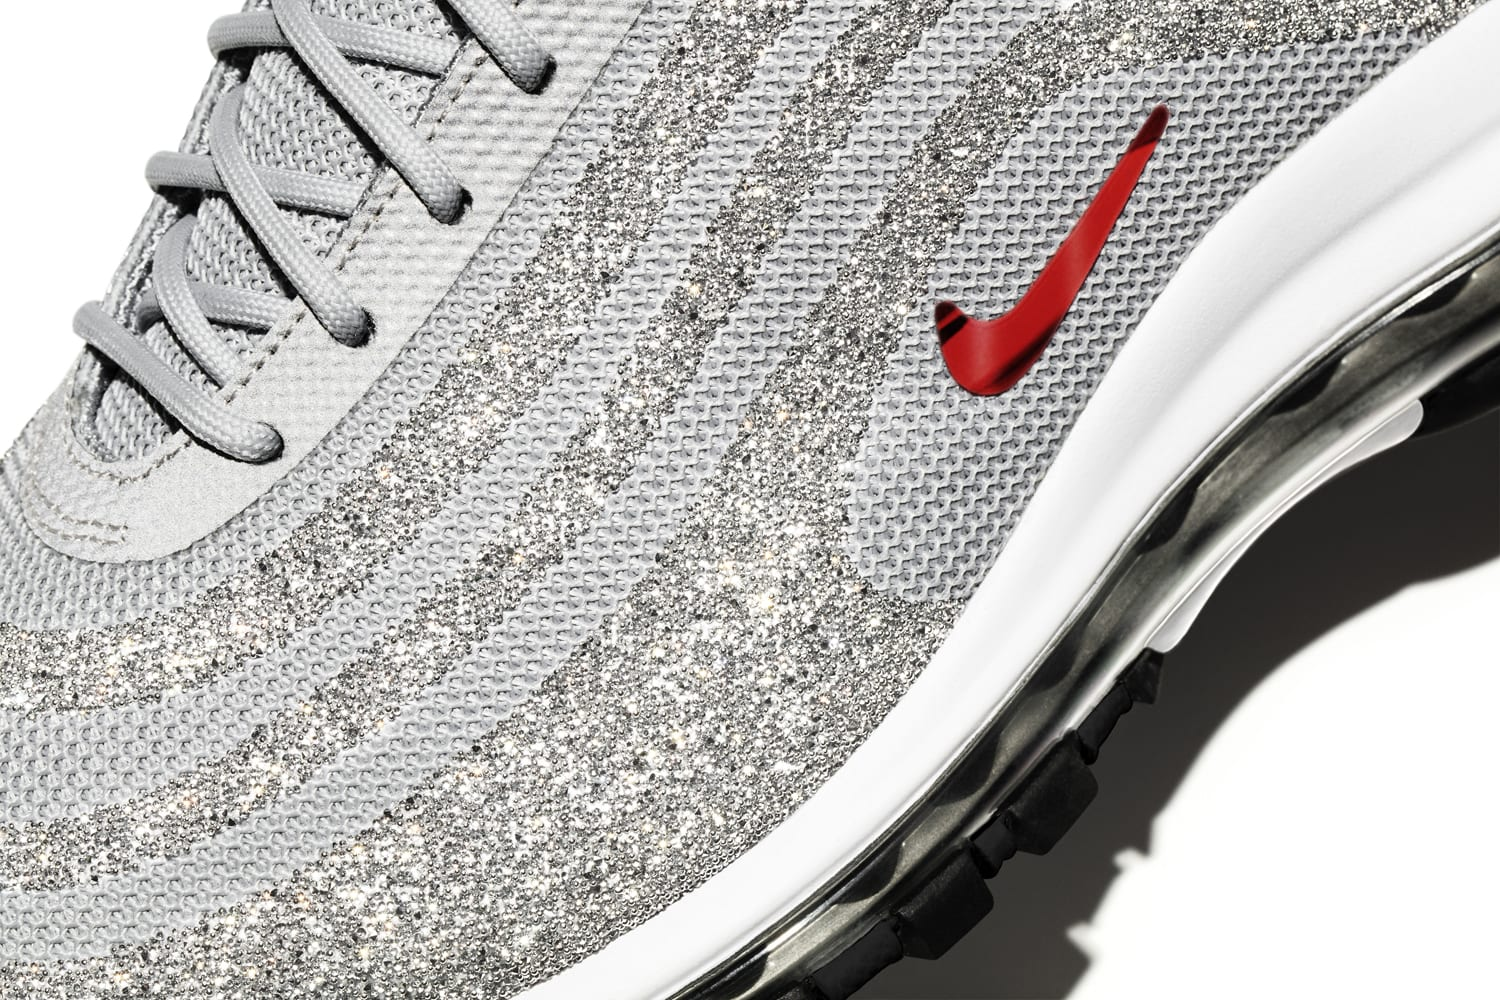 These Gaudy Nike Air Max 97s Have 55690 Swarovski Crystals on Them